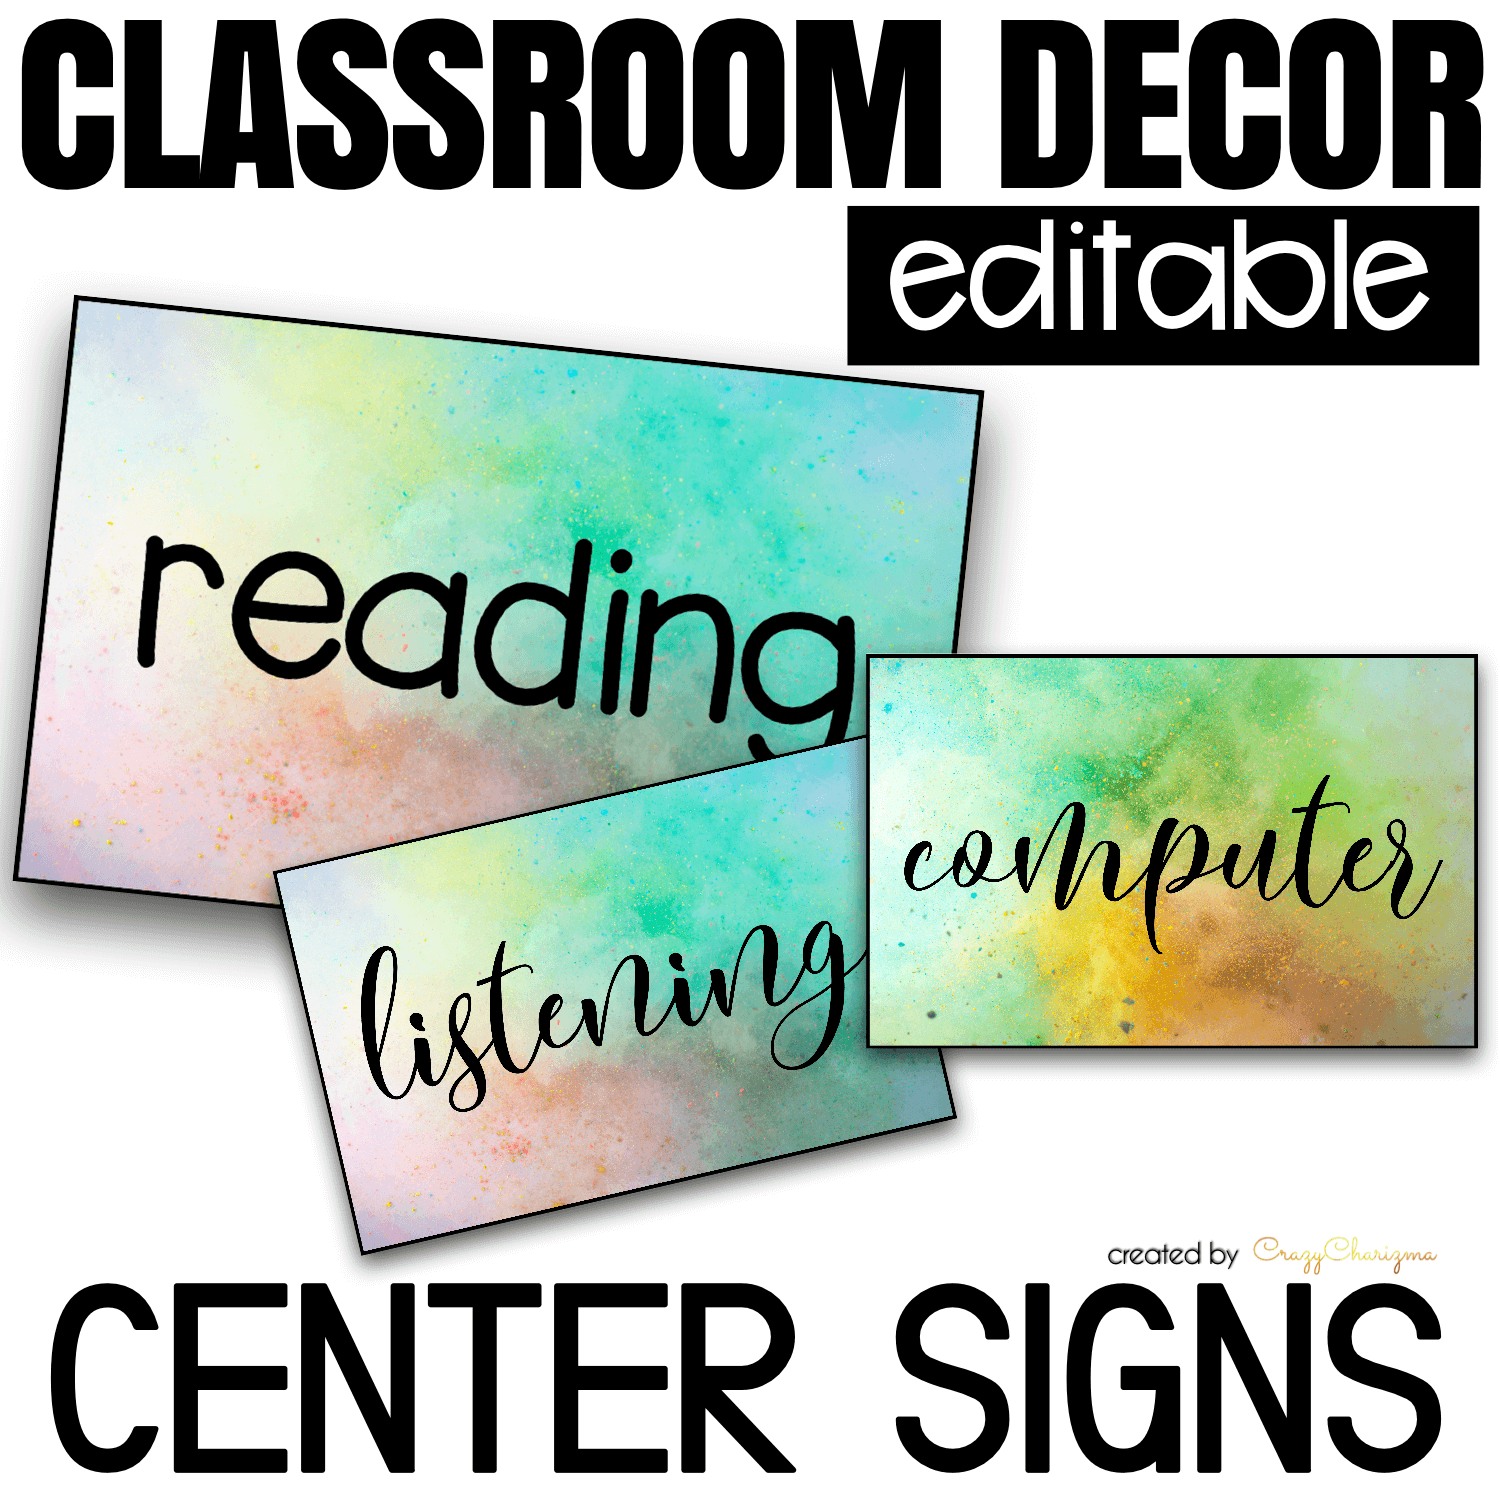 Looking for bright and clear EDITABLE center signs? Spice your classroom with this visually appealing SPLASH classroom decor!